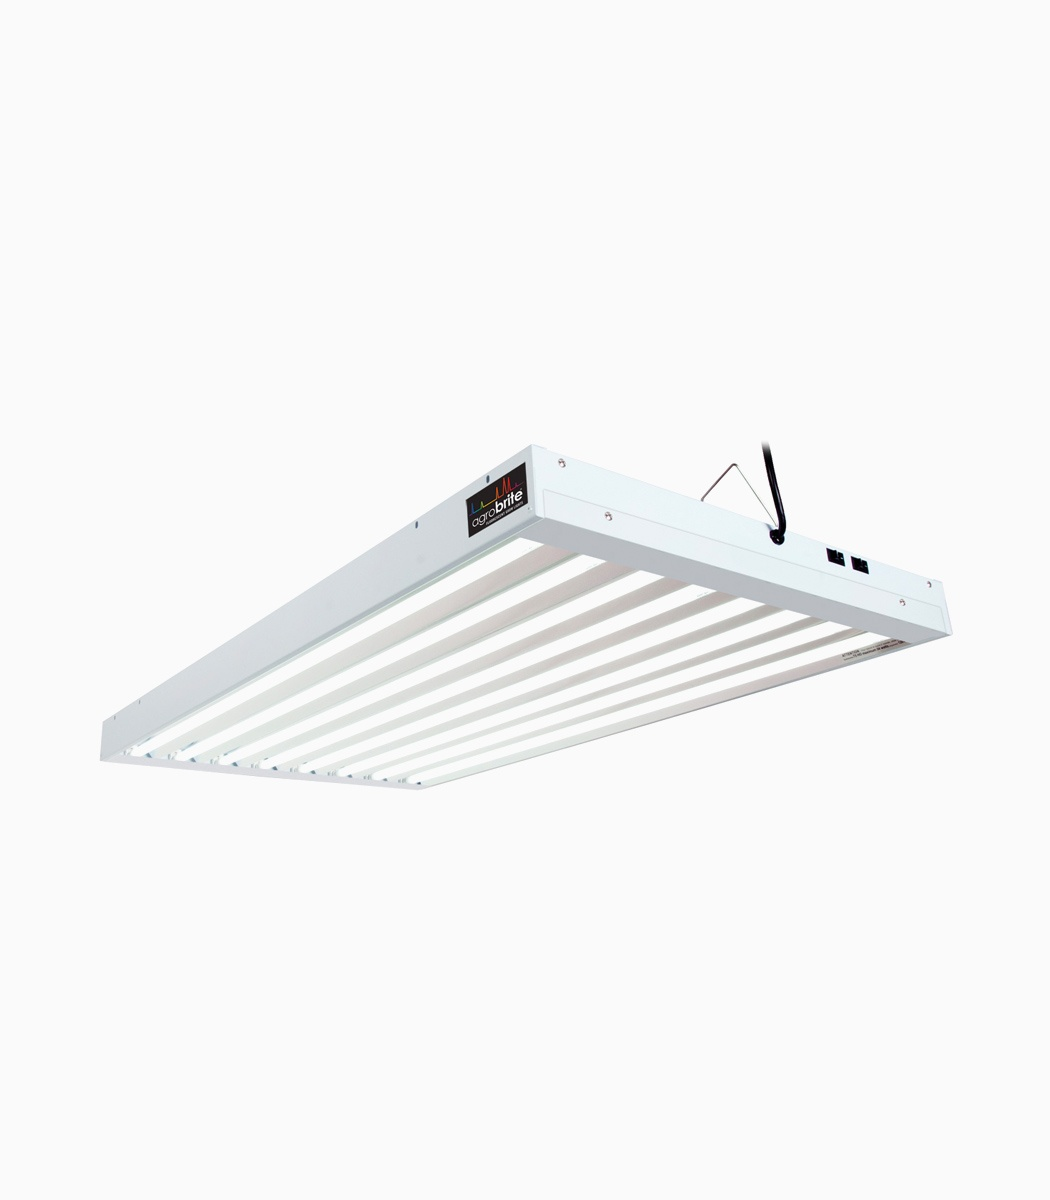 Agrobrite T5 432w 4 8 Tube Fixture With Lamps